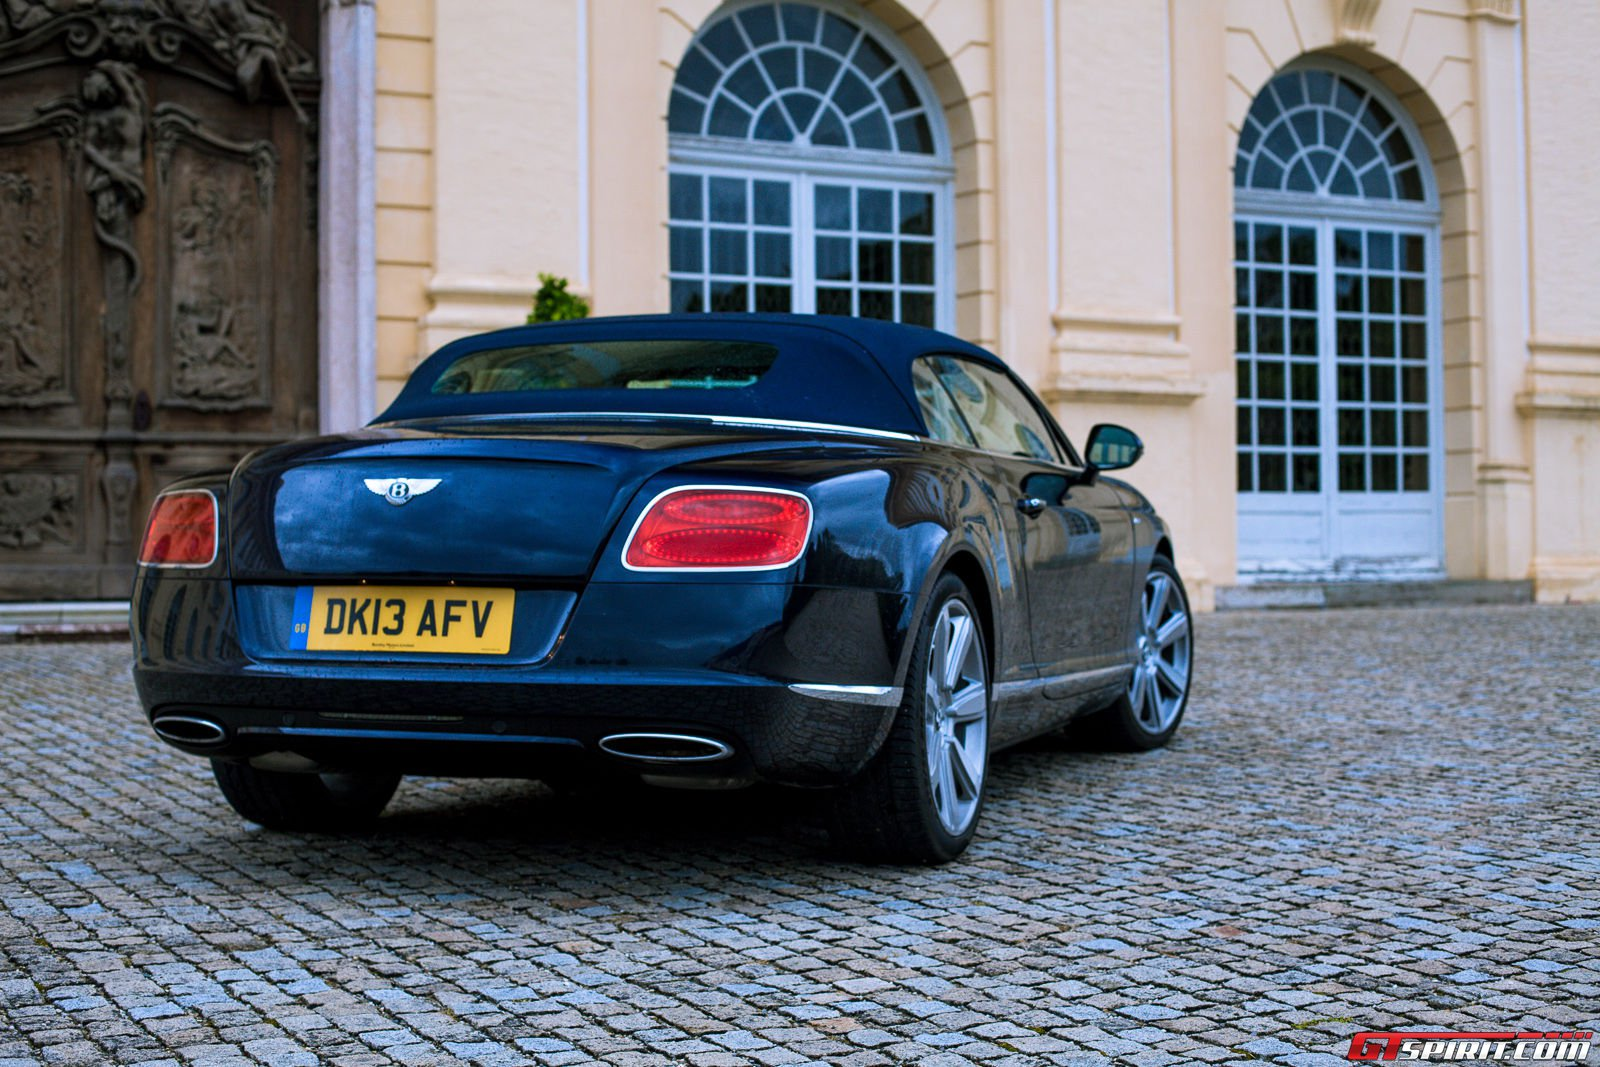 Road test 2013 bentley continental gtc w12 review how does the new bentley continental gtc compare to its predecessor vanachro Images